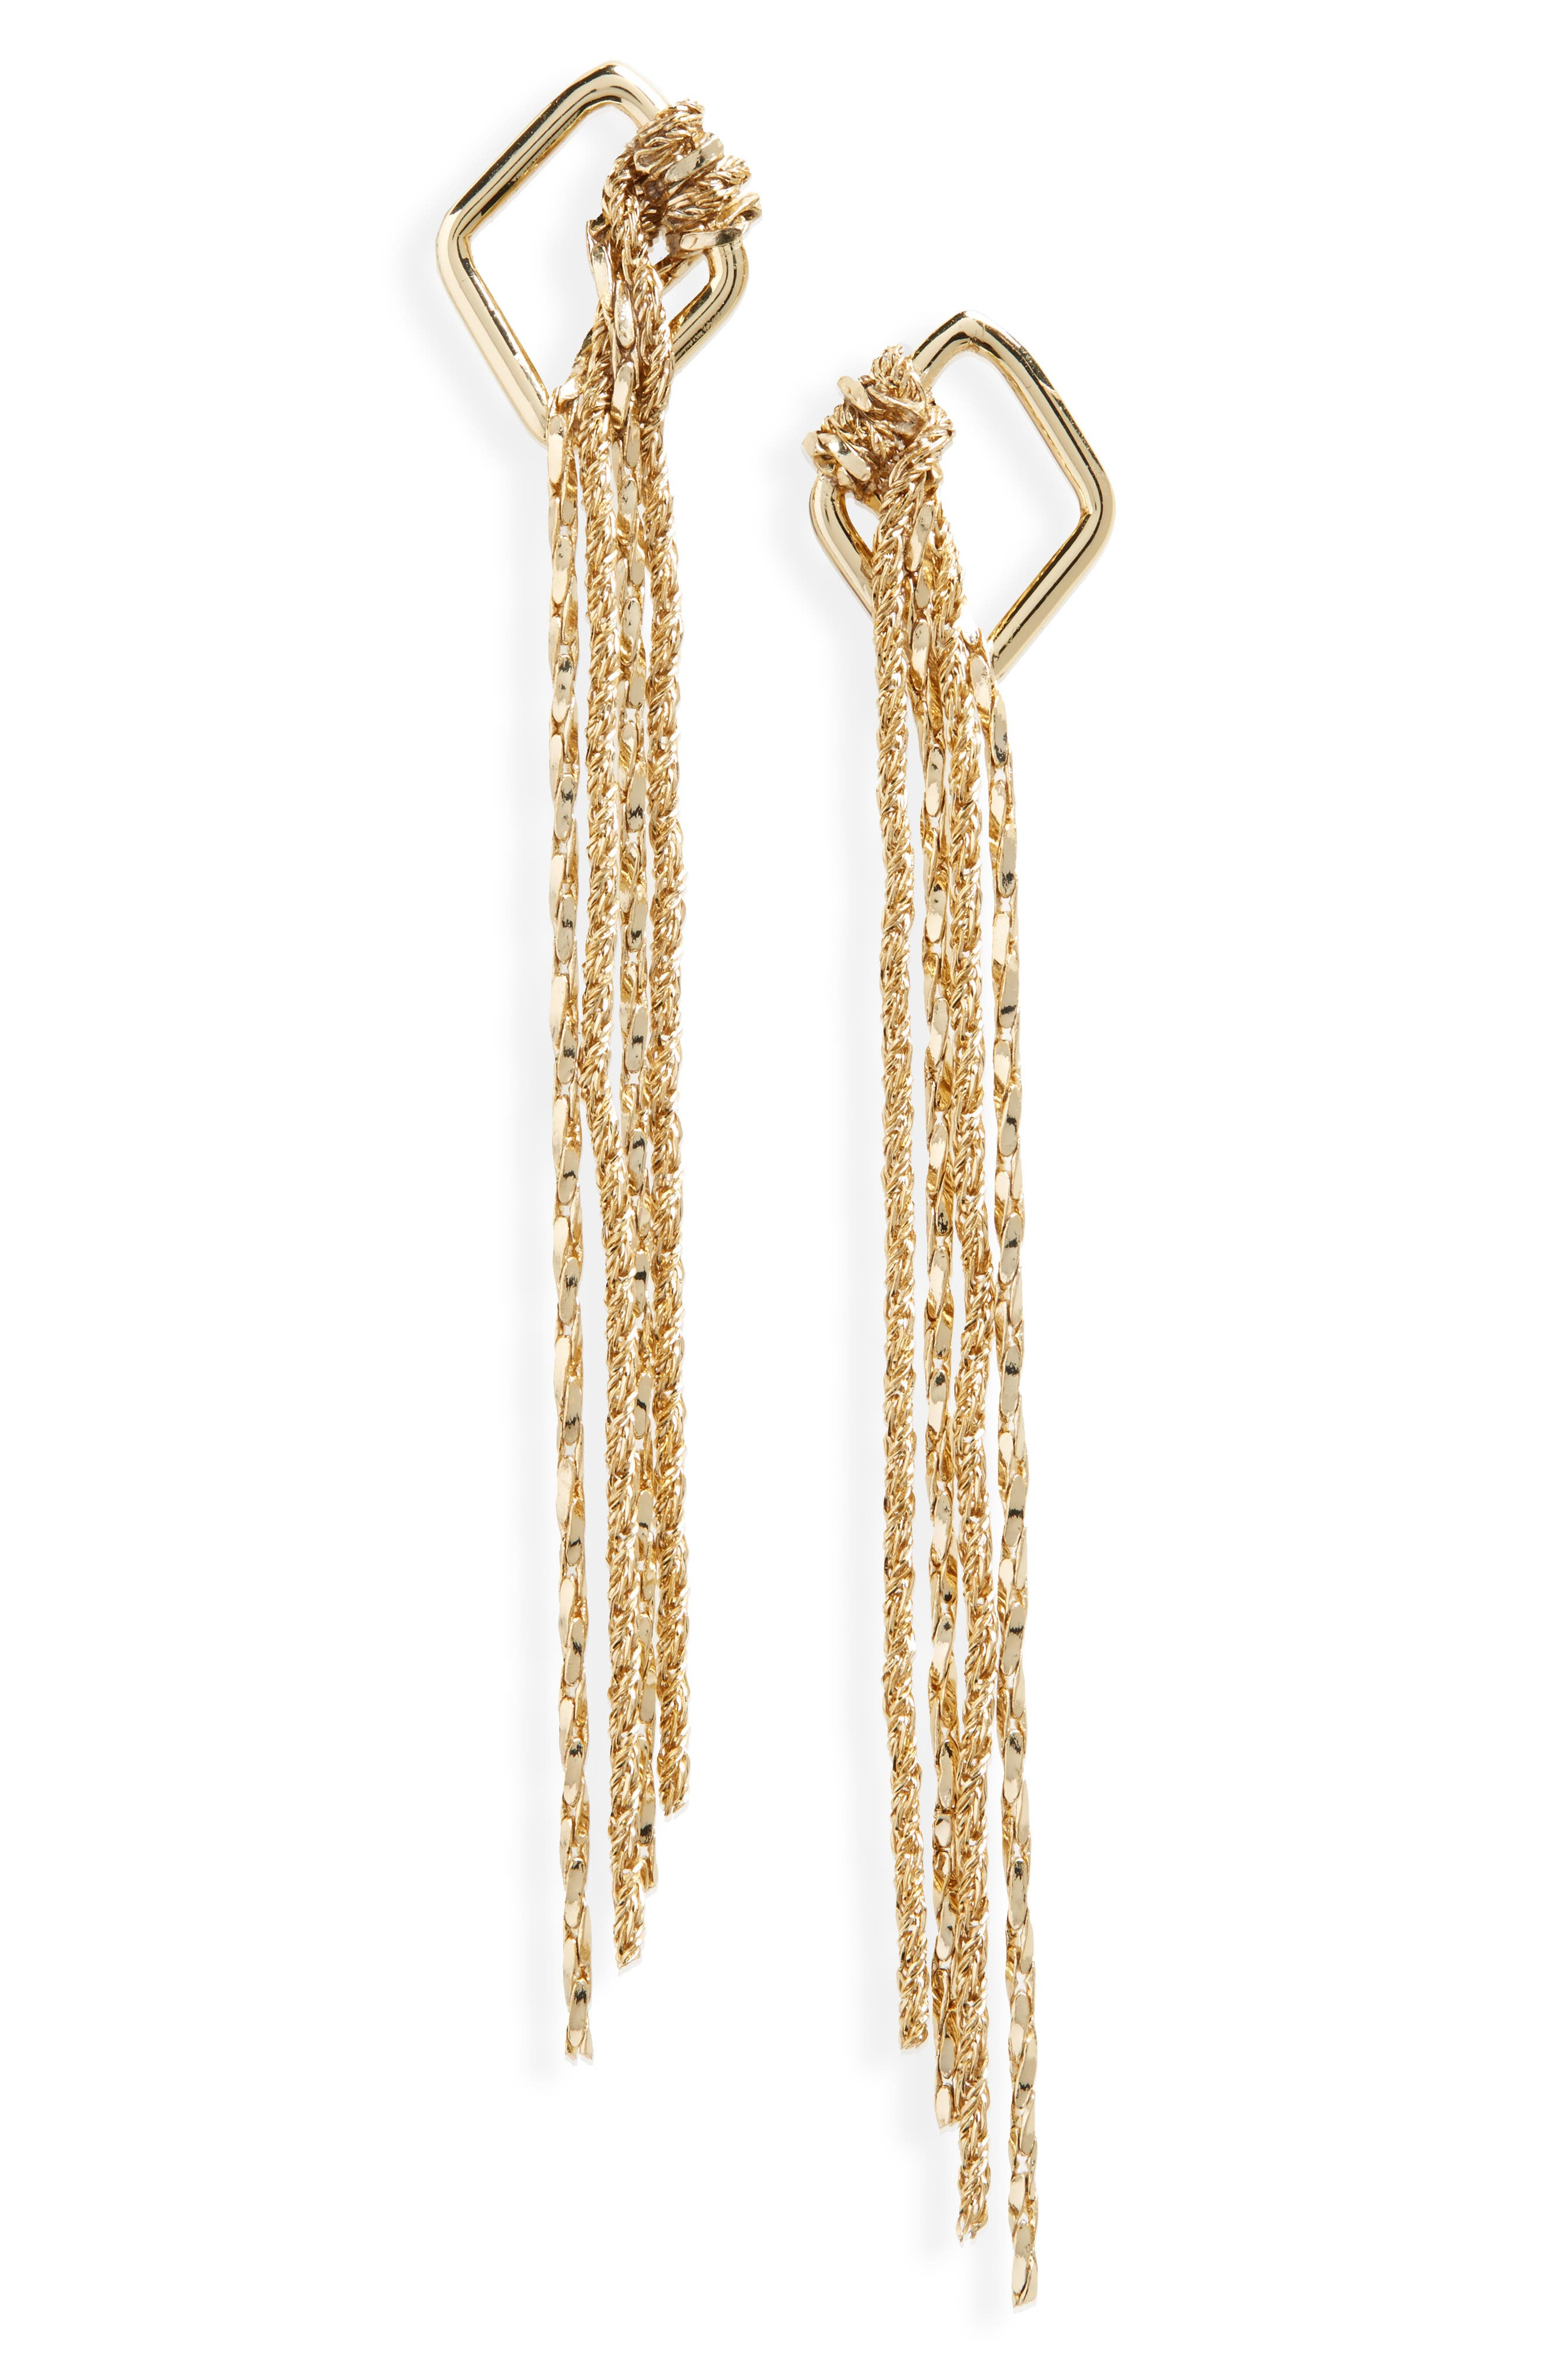 Knotted Fringe Earrings,                         Main,                         color, Gold